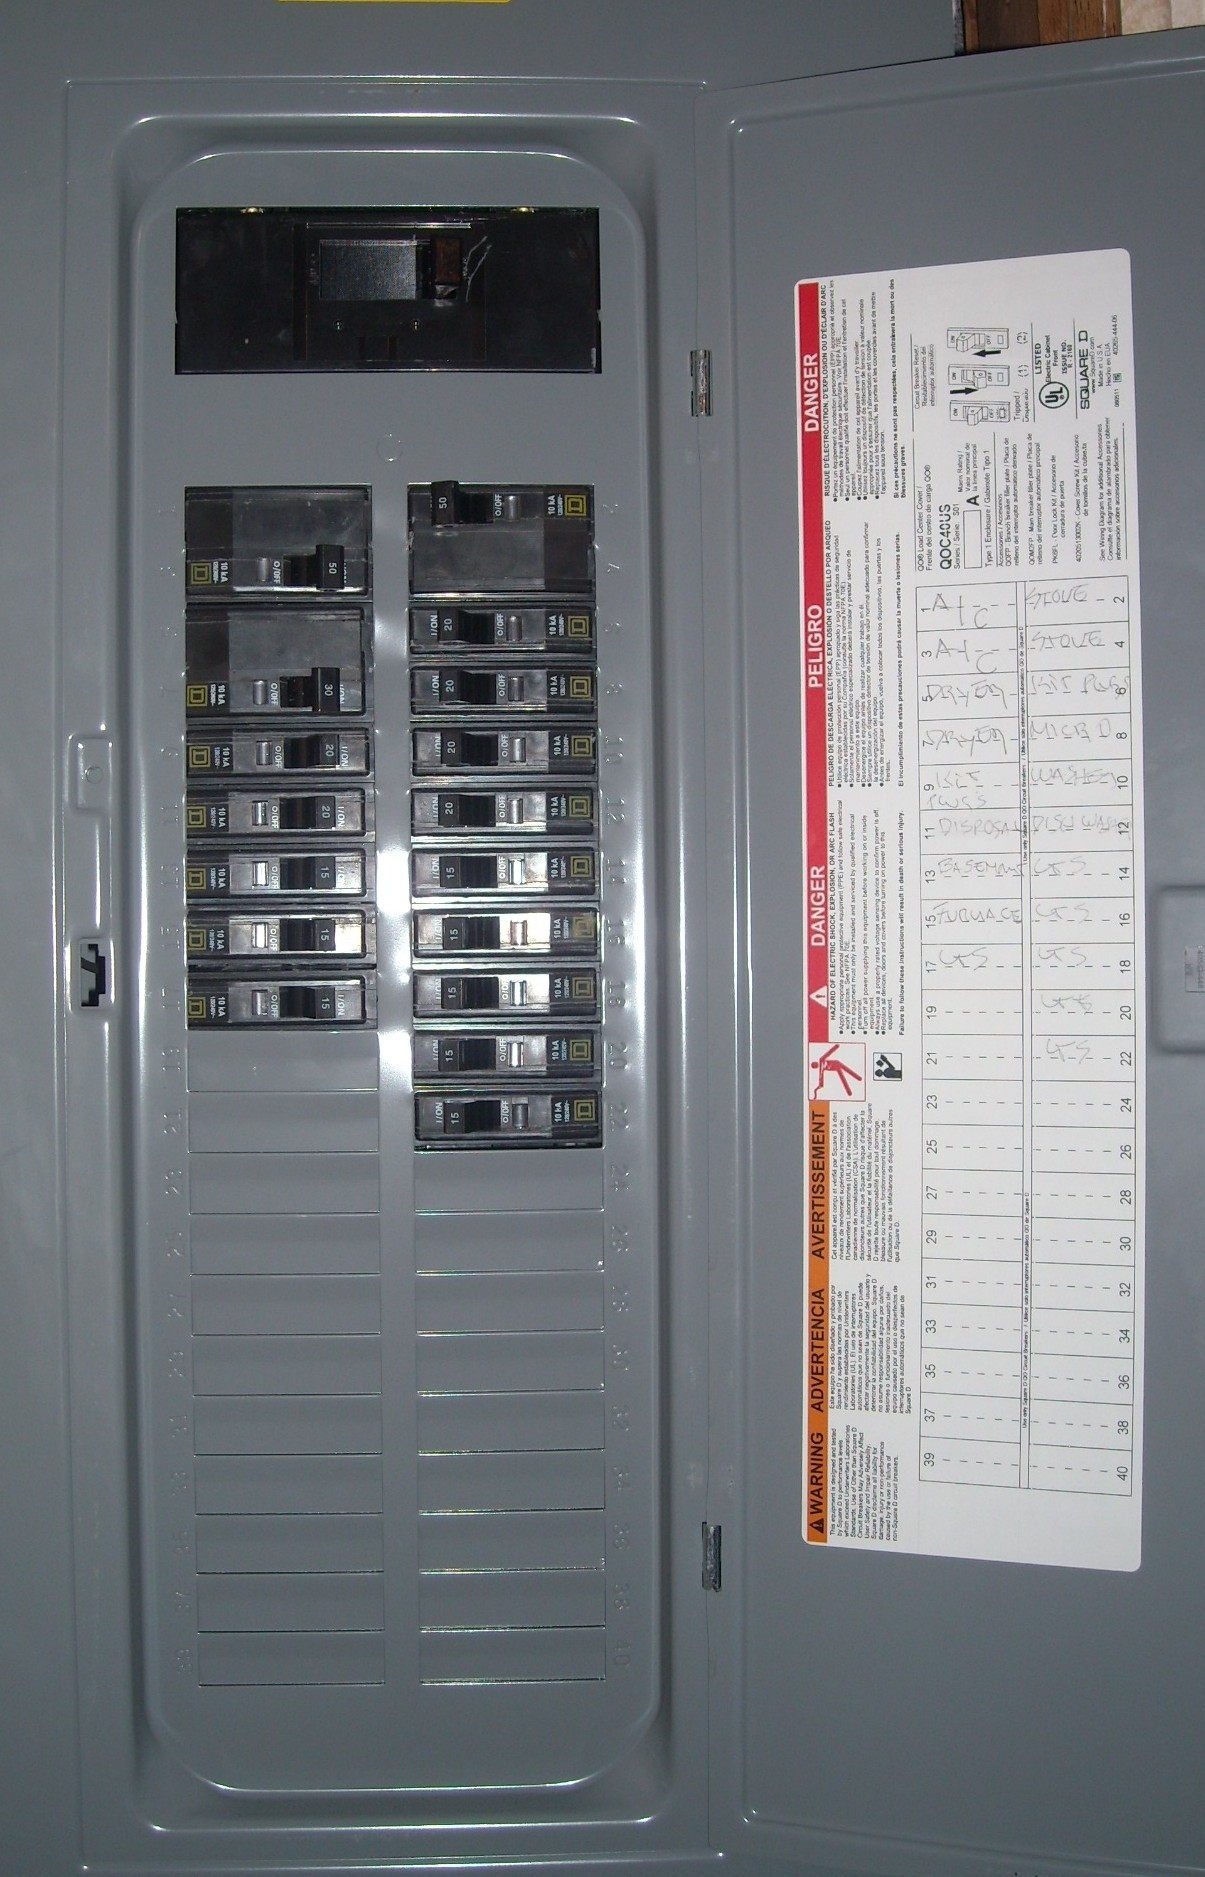 Fuse Box Or Circuit Breaker Panel : Hot water heater fuse box wiring diagram images